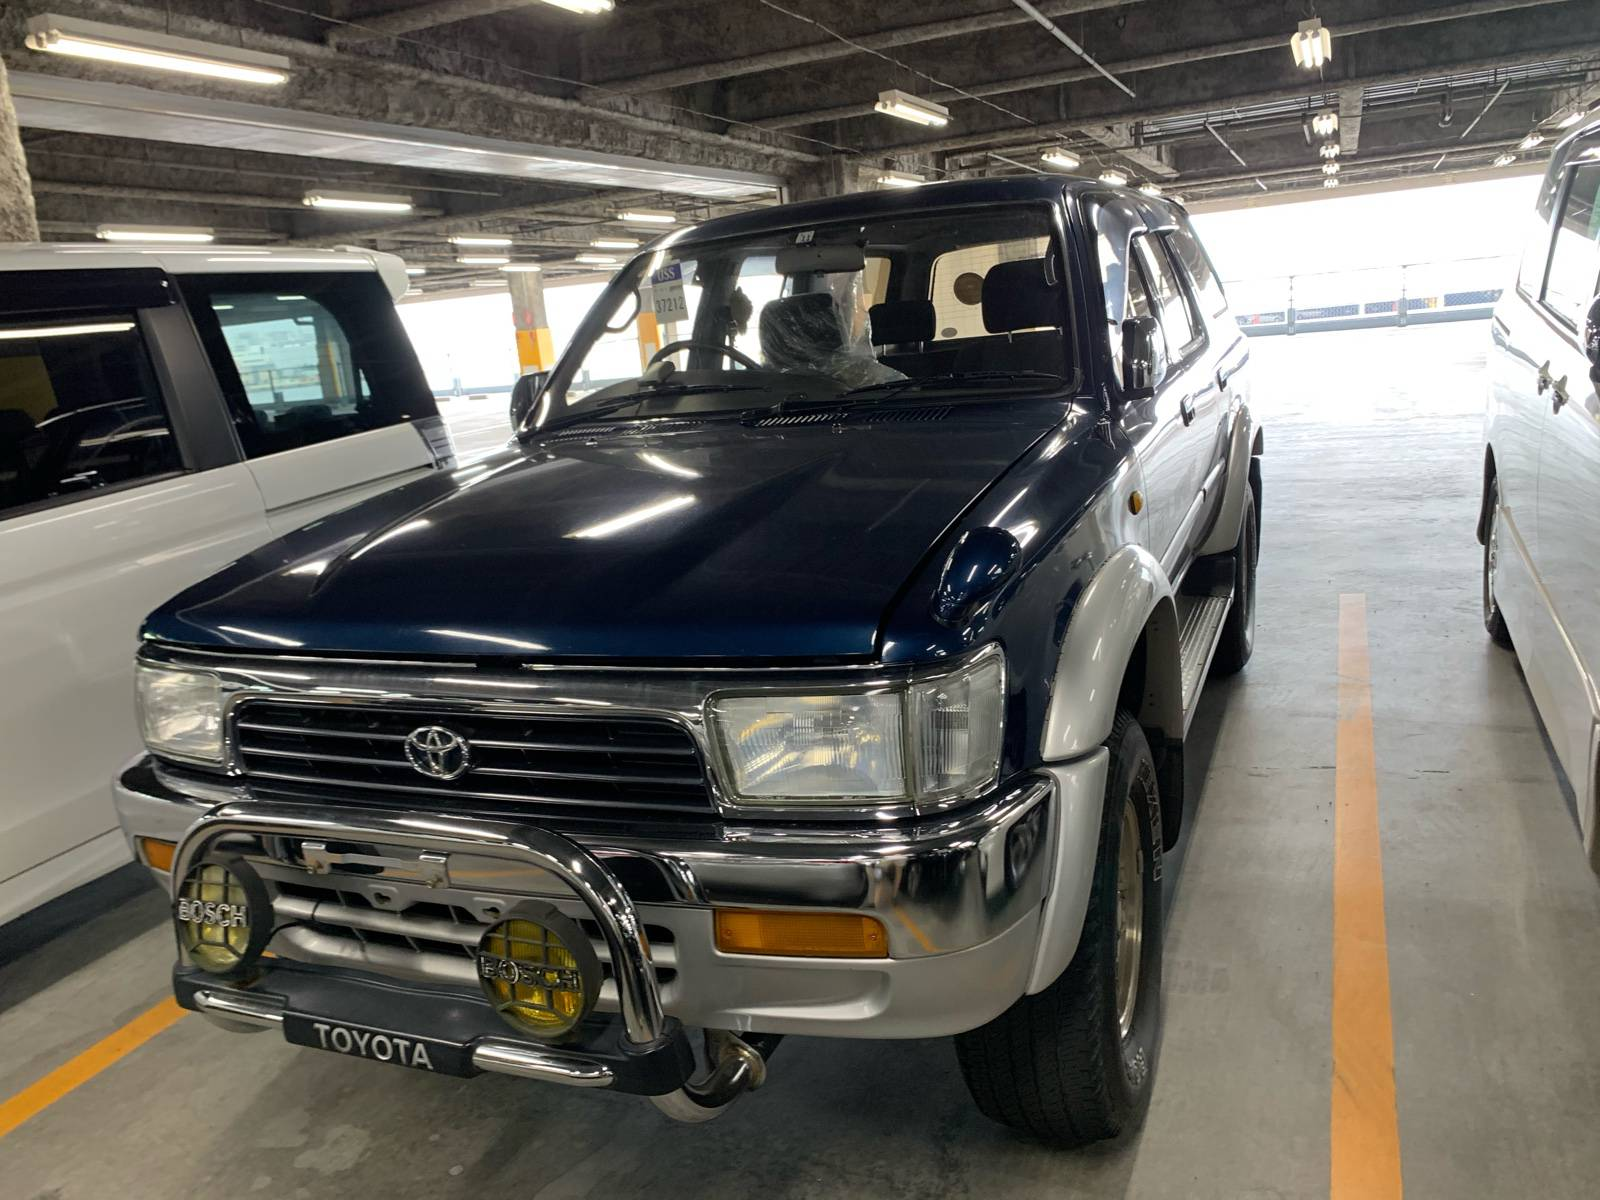 1994 Toyota Hilux Surf SSR-X (Arriving January 2021)